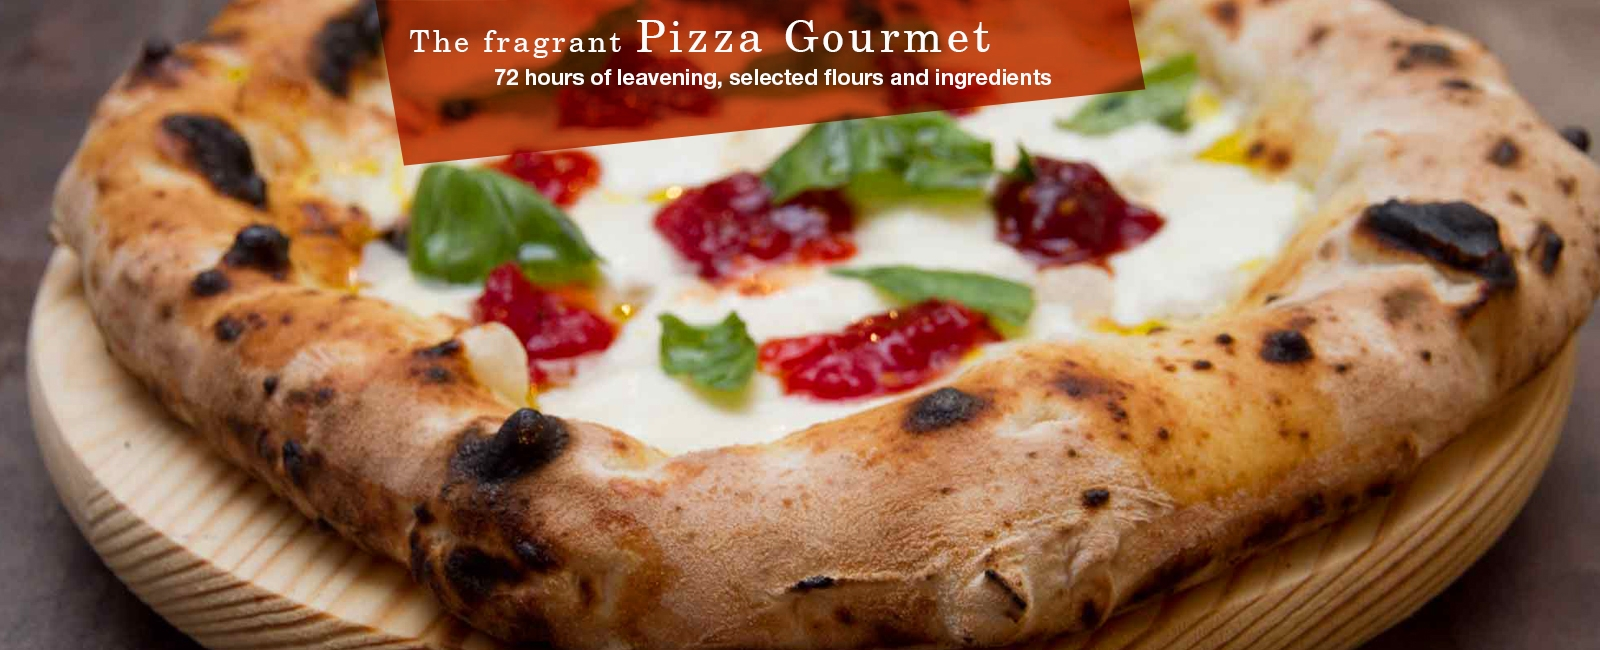 The ffragrant Pizza Gourmet<br />